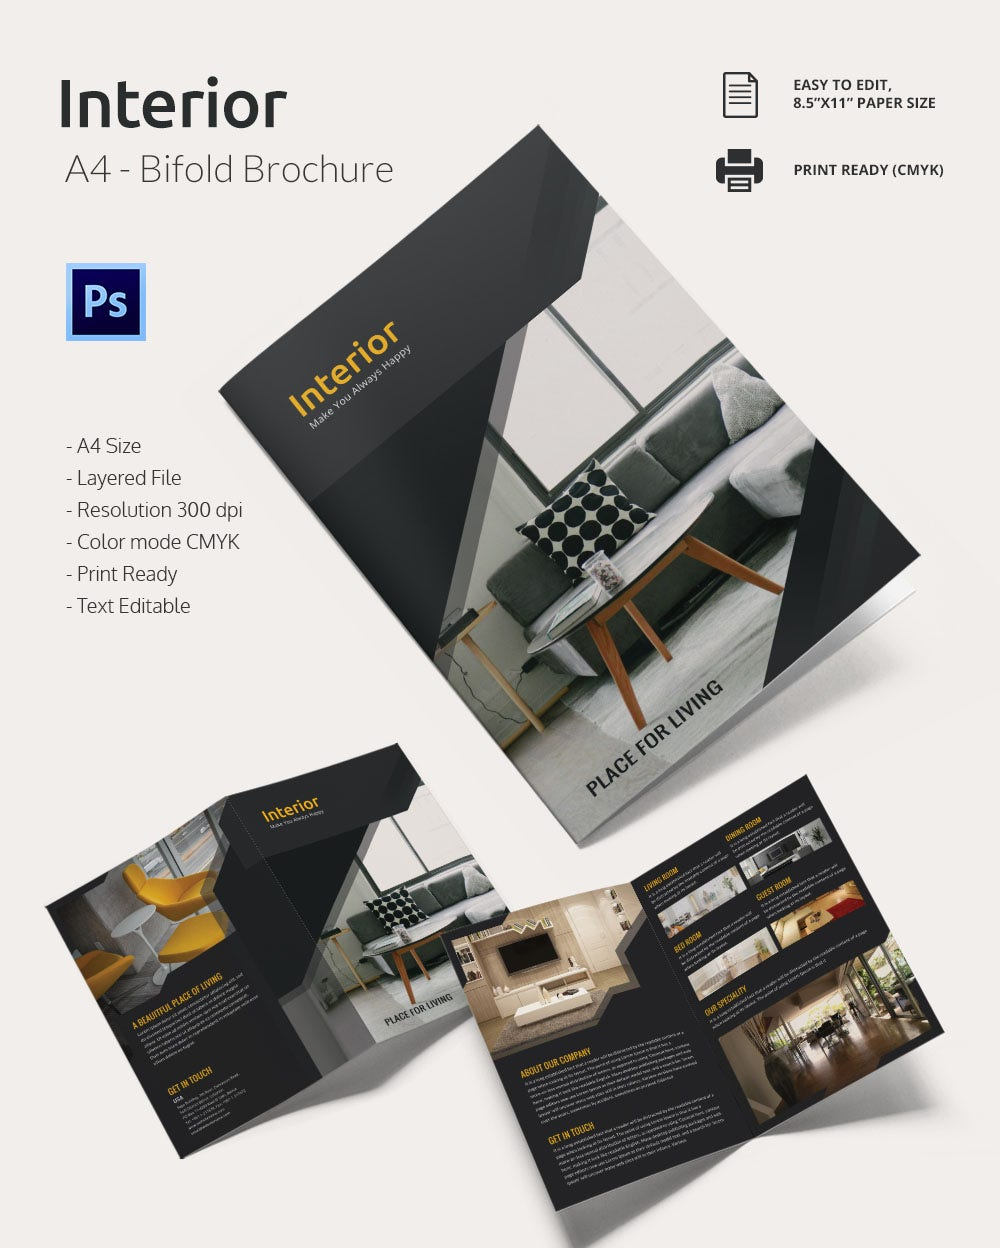 17 interior decoration brochure free word psd pdf for Template brochures